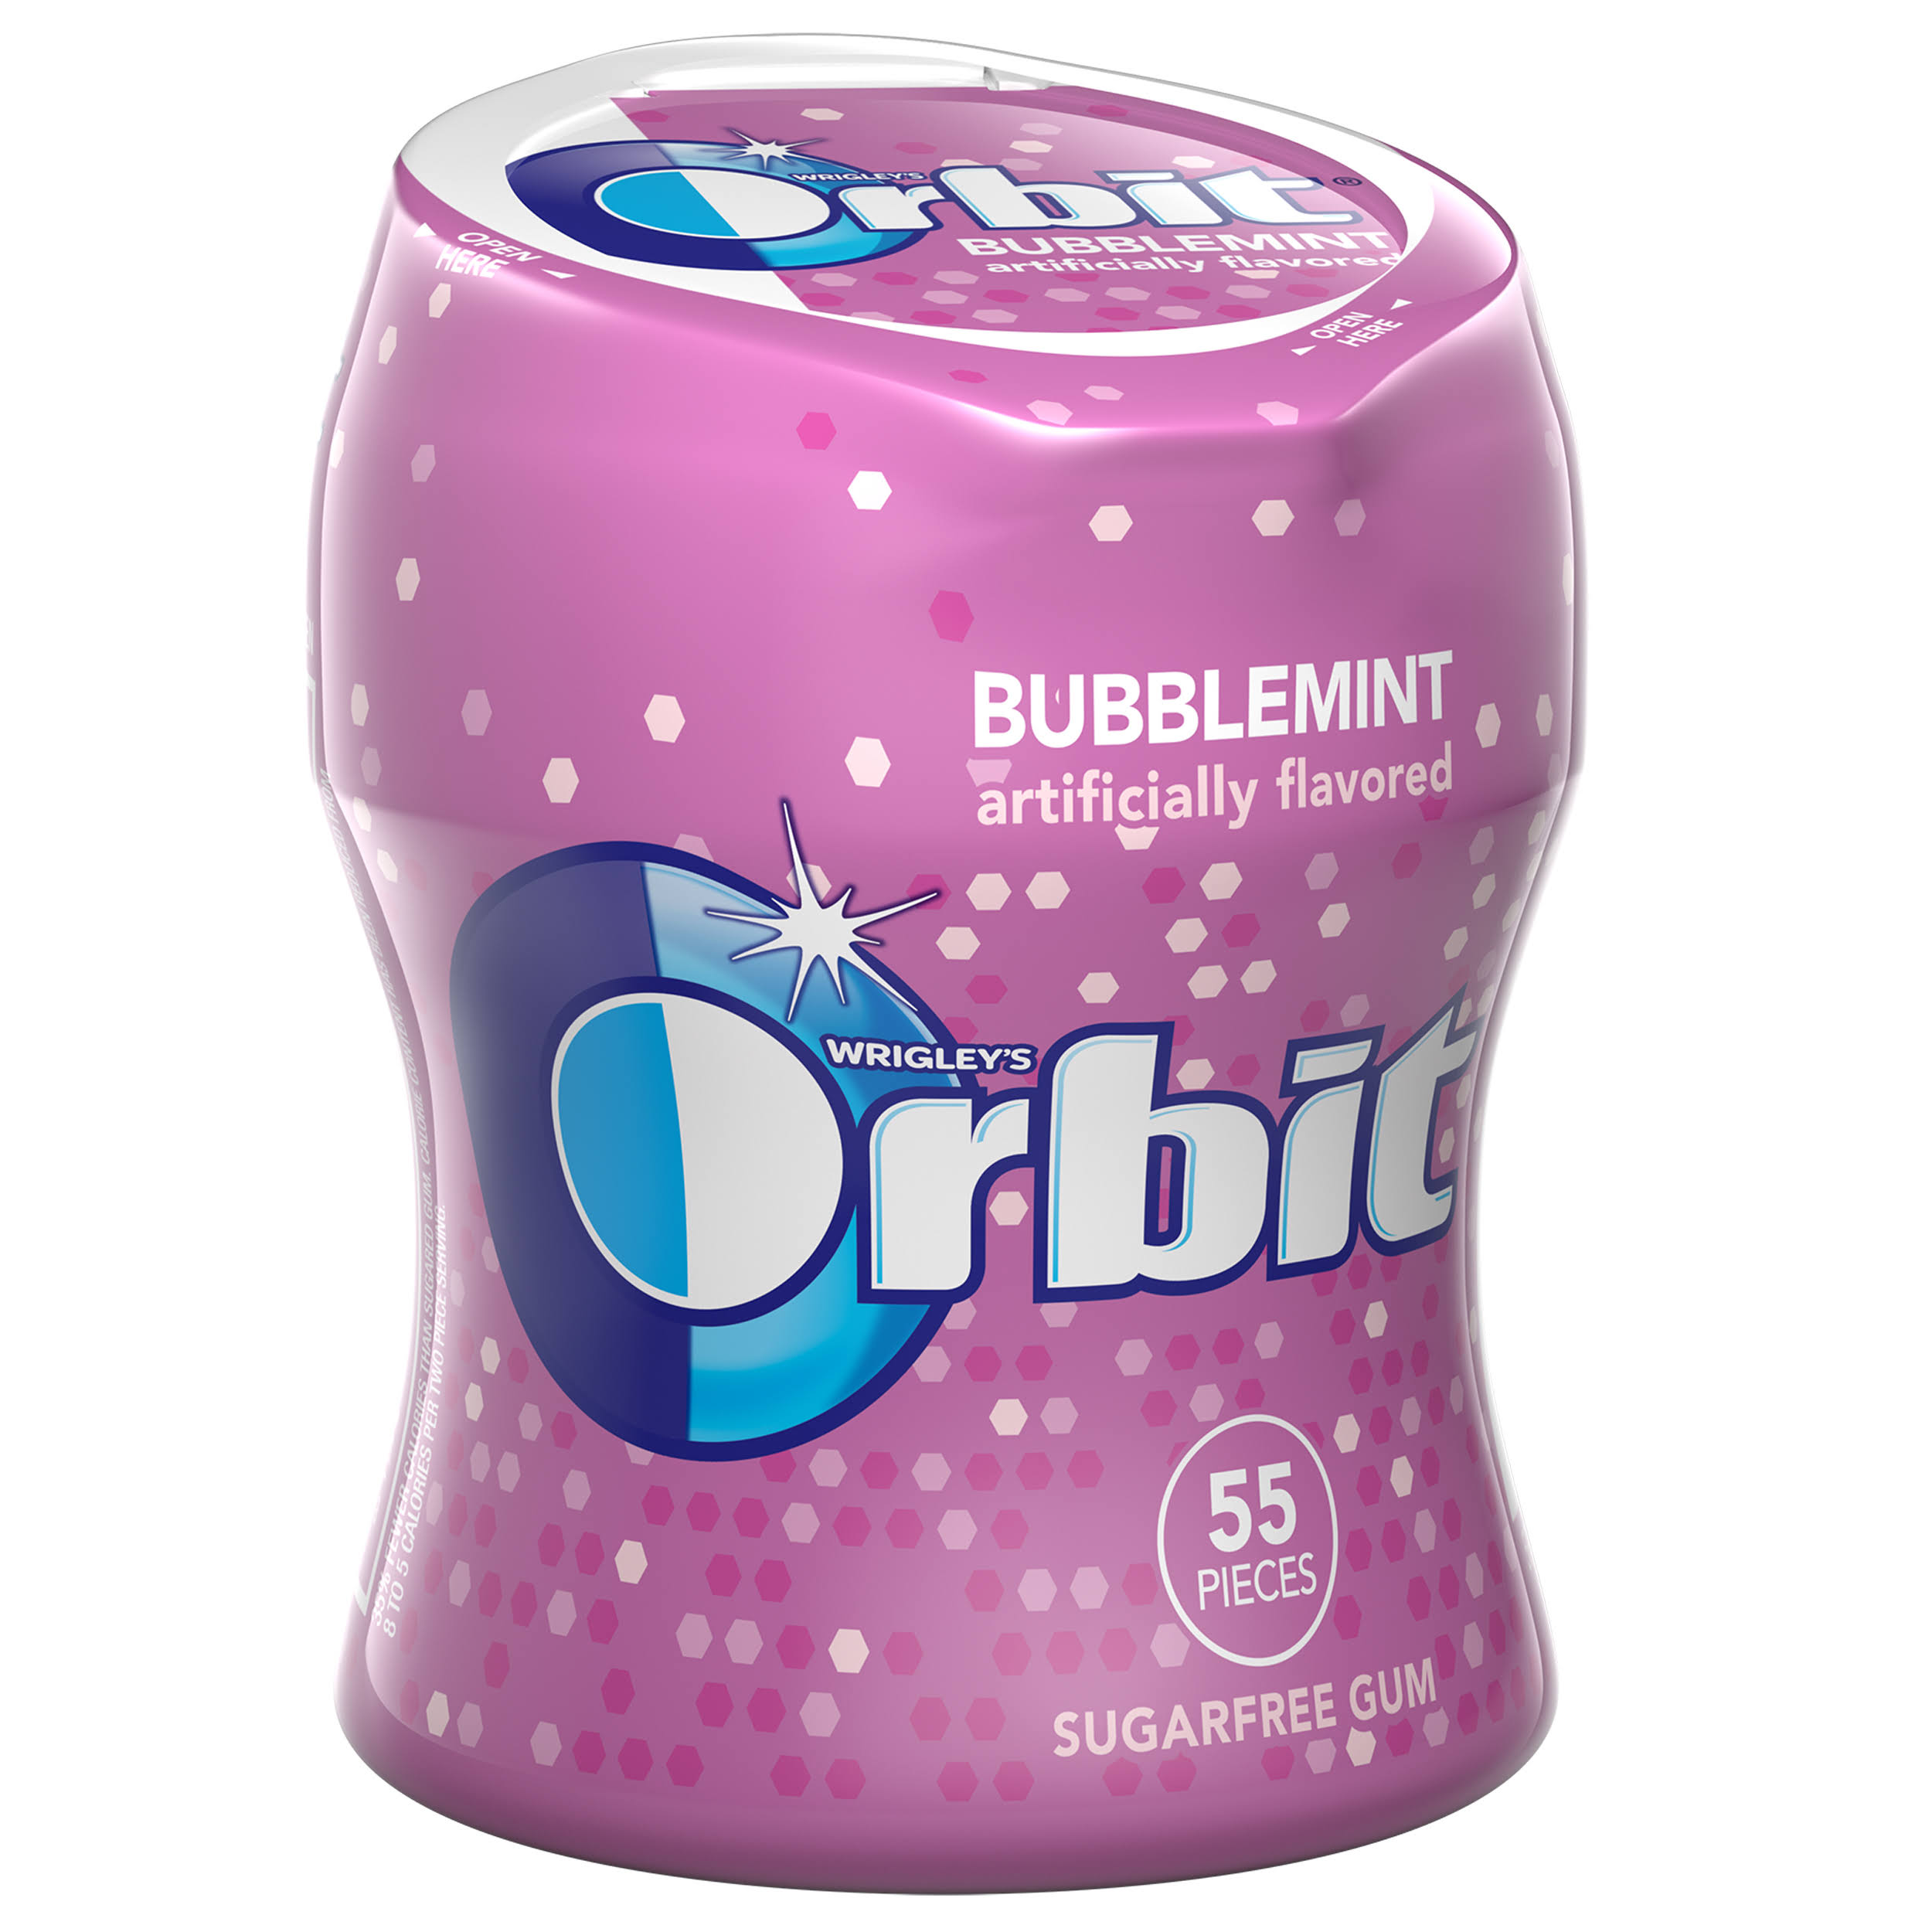 Wrigley's Orbit Sugarfree Gum - Bubblemint, 55 Pieces